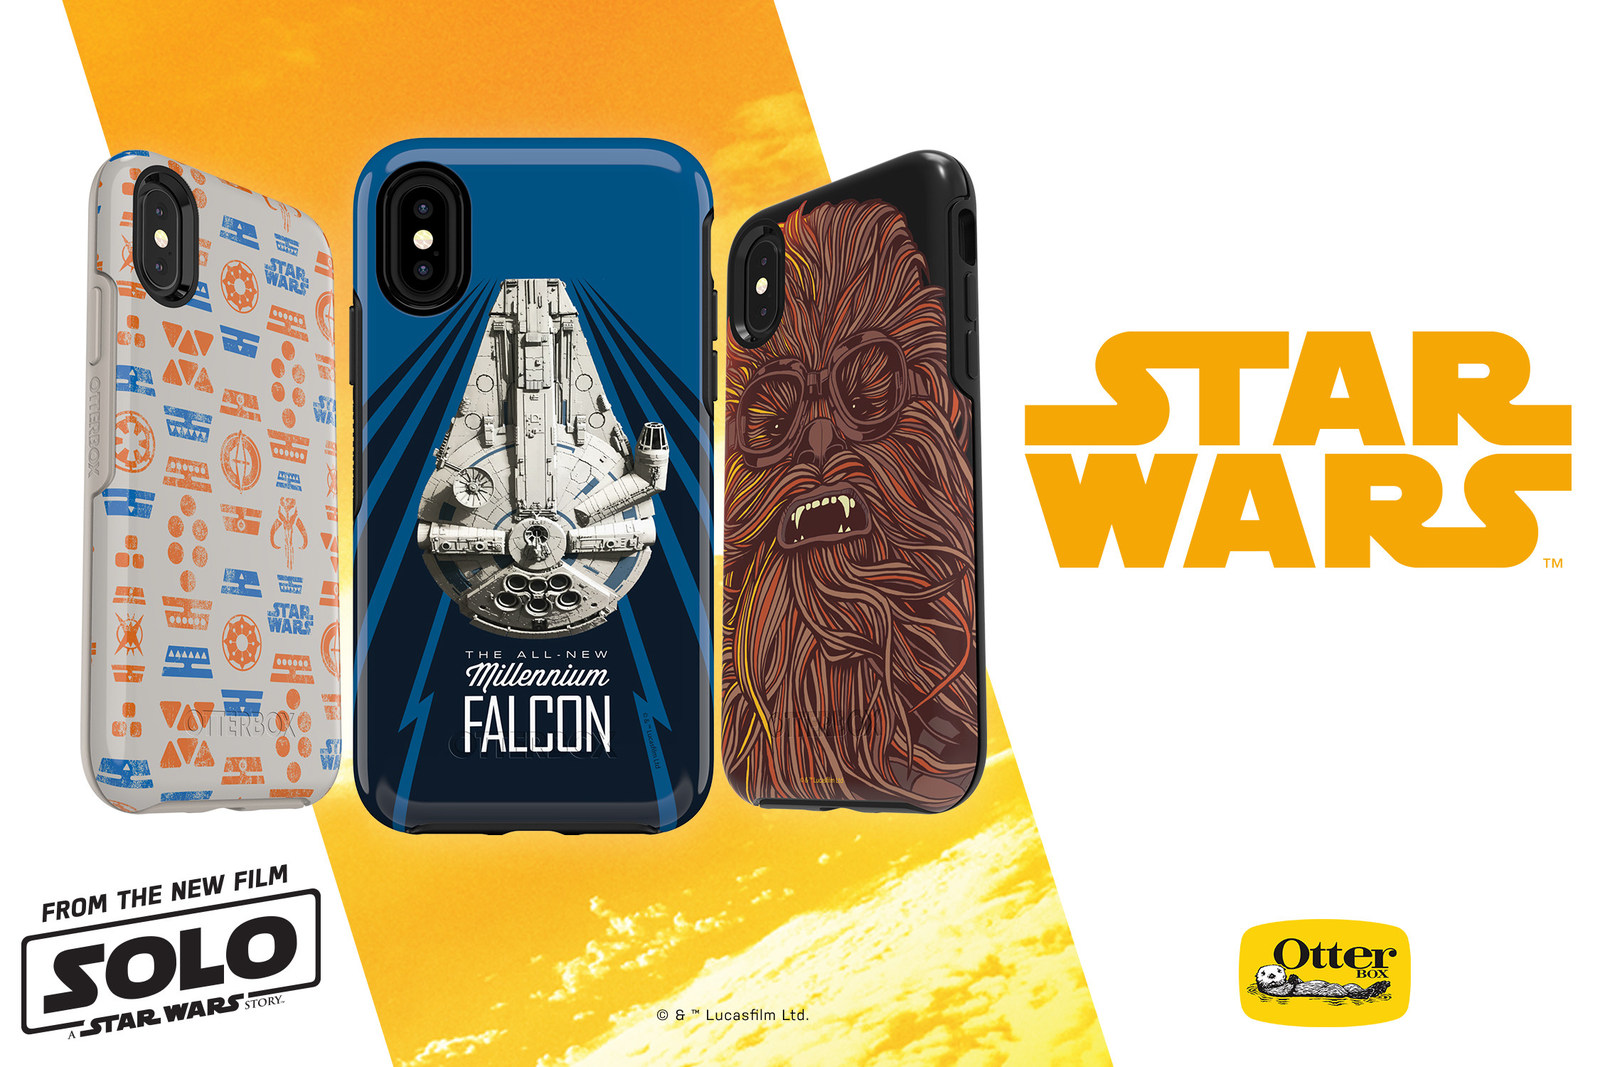 Newly Smuggled Protection: Solo: A Star Wars Story Symmetry Series Cases Released